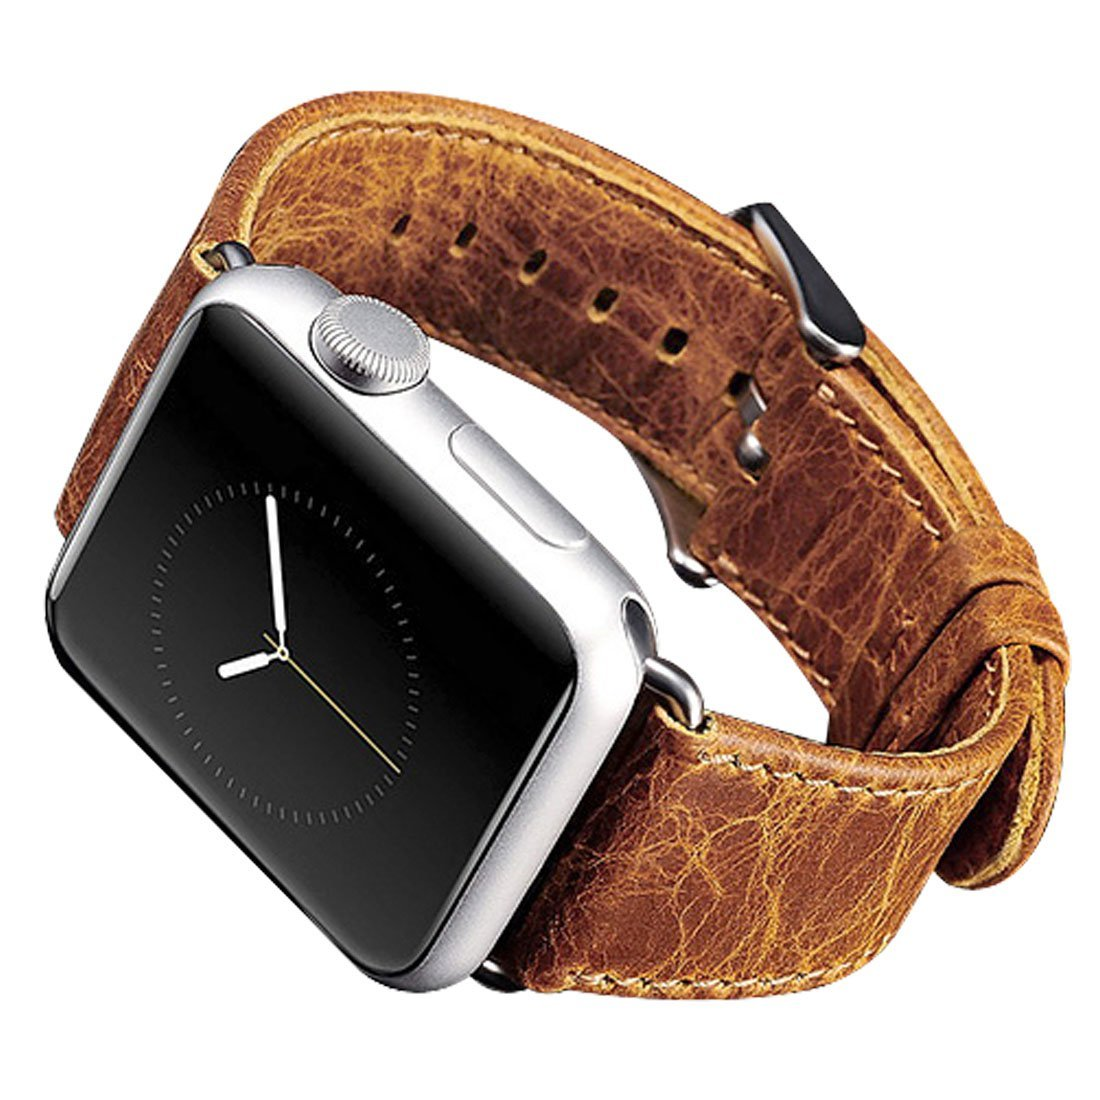 Apple Watch Leather Band, iitee [TM] Vintage Genuine Leather Strap Wristband with Free Adapters iWatch Replacement Band Bracelet with Metal Clasp for Apple Watch (38mm orange)